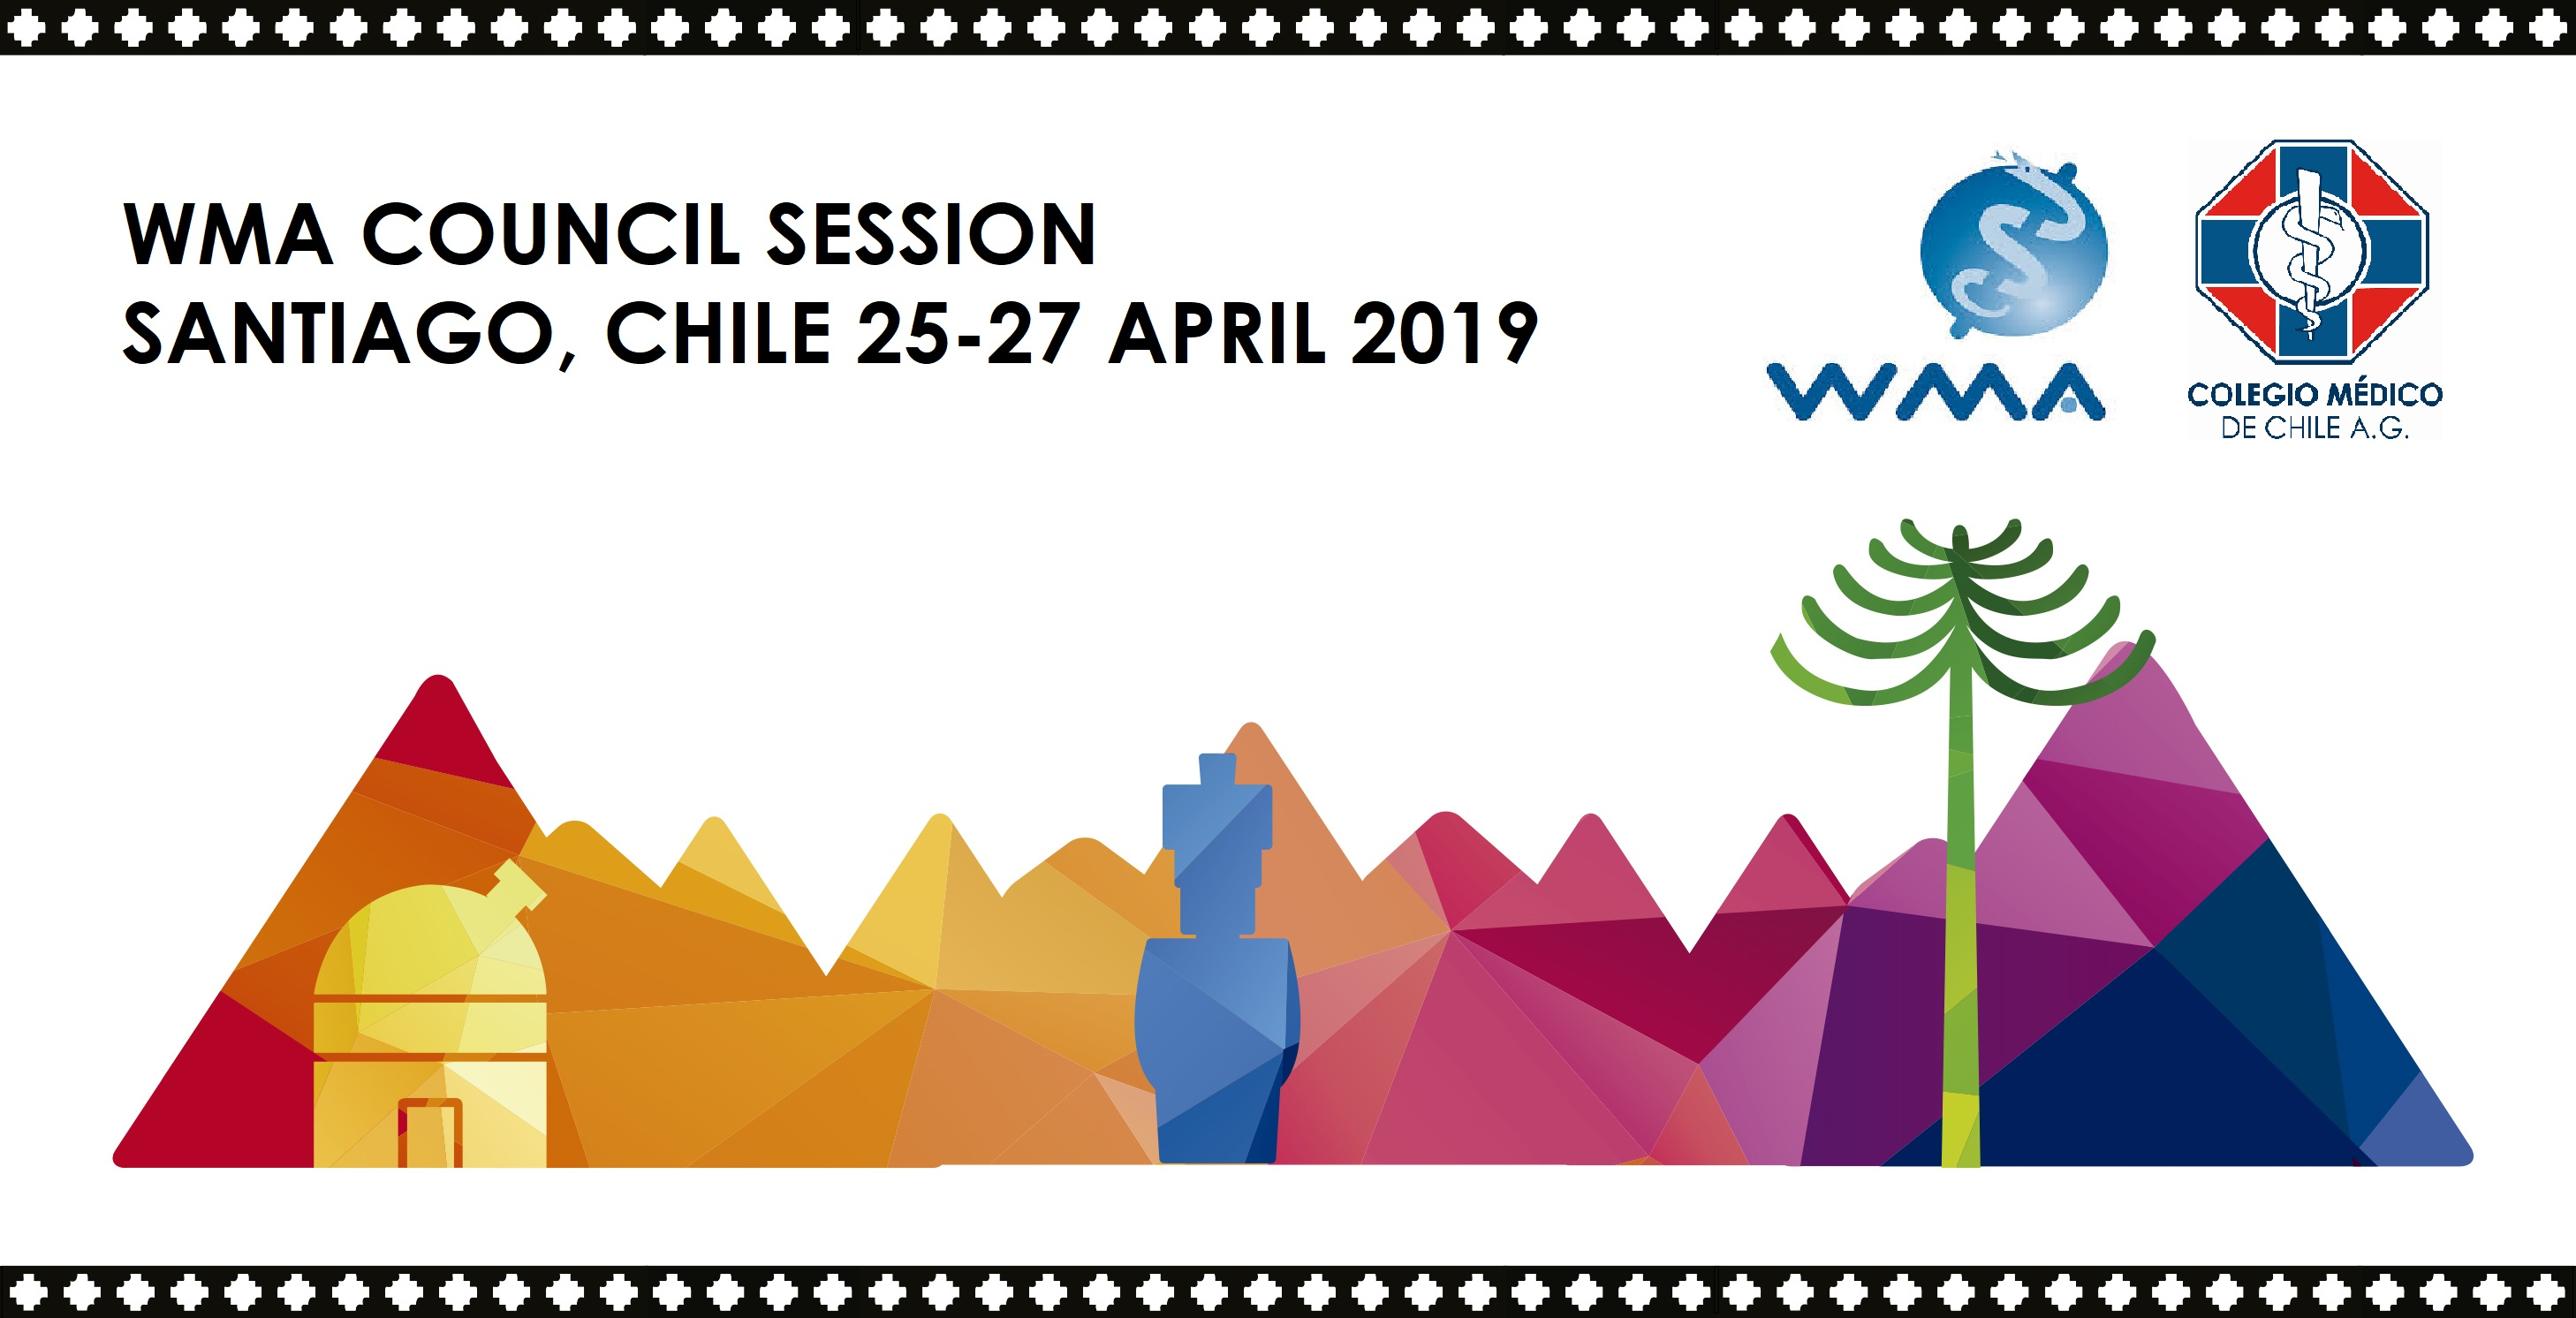 212th WMA Council Session, Santiago 2019